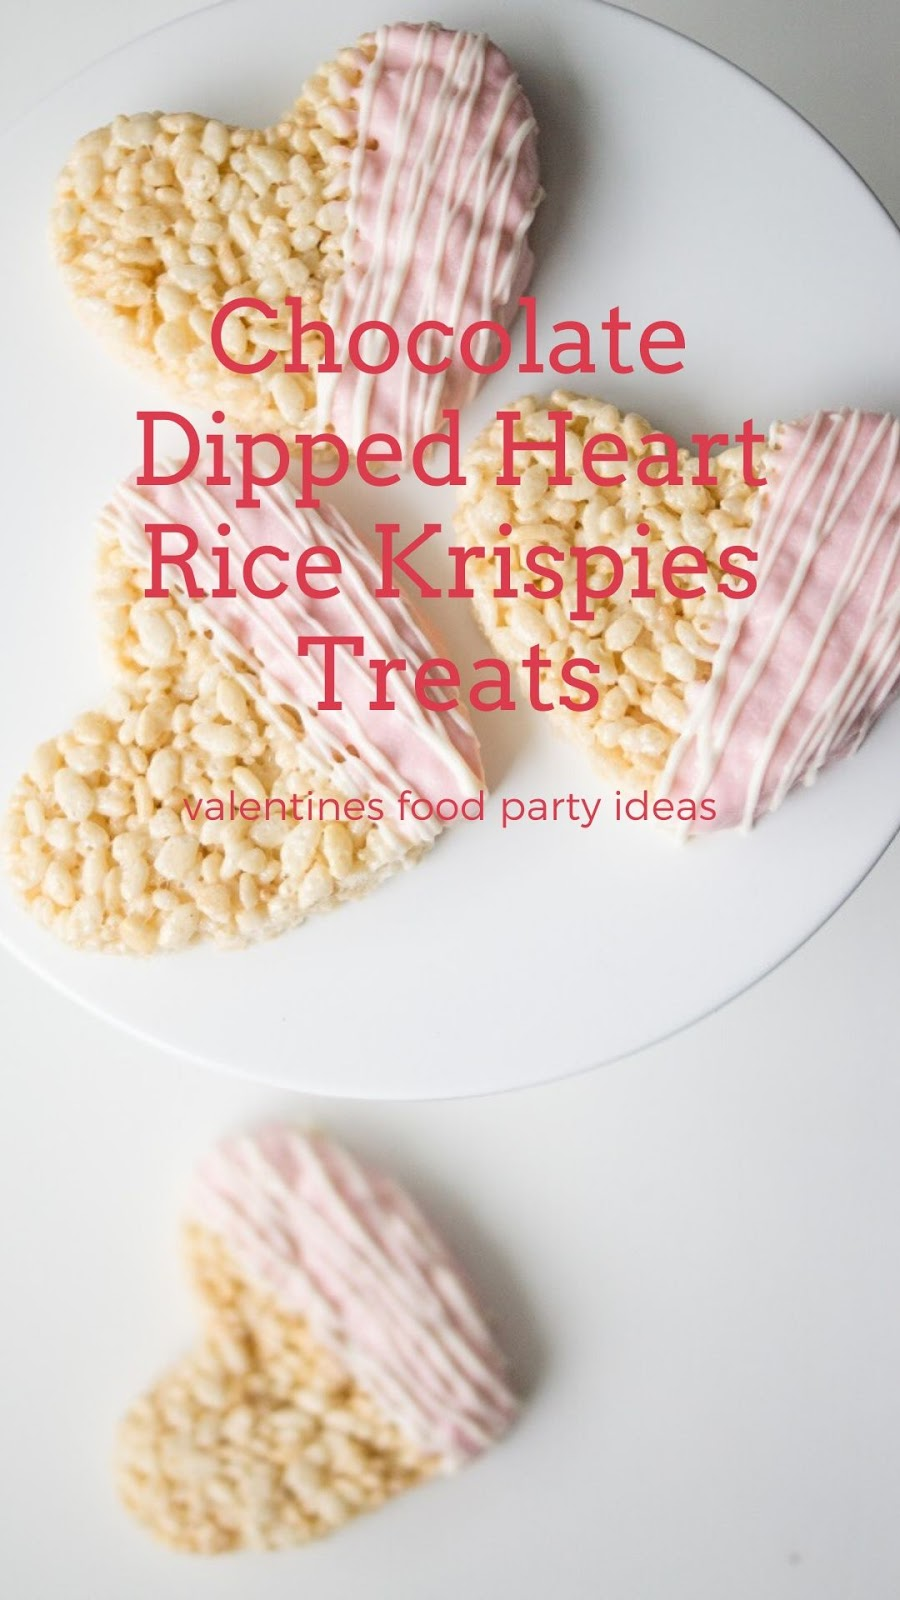 valentines food party ideas